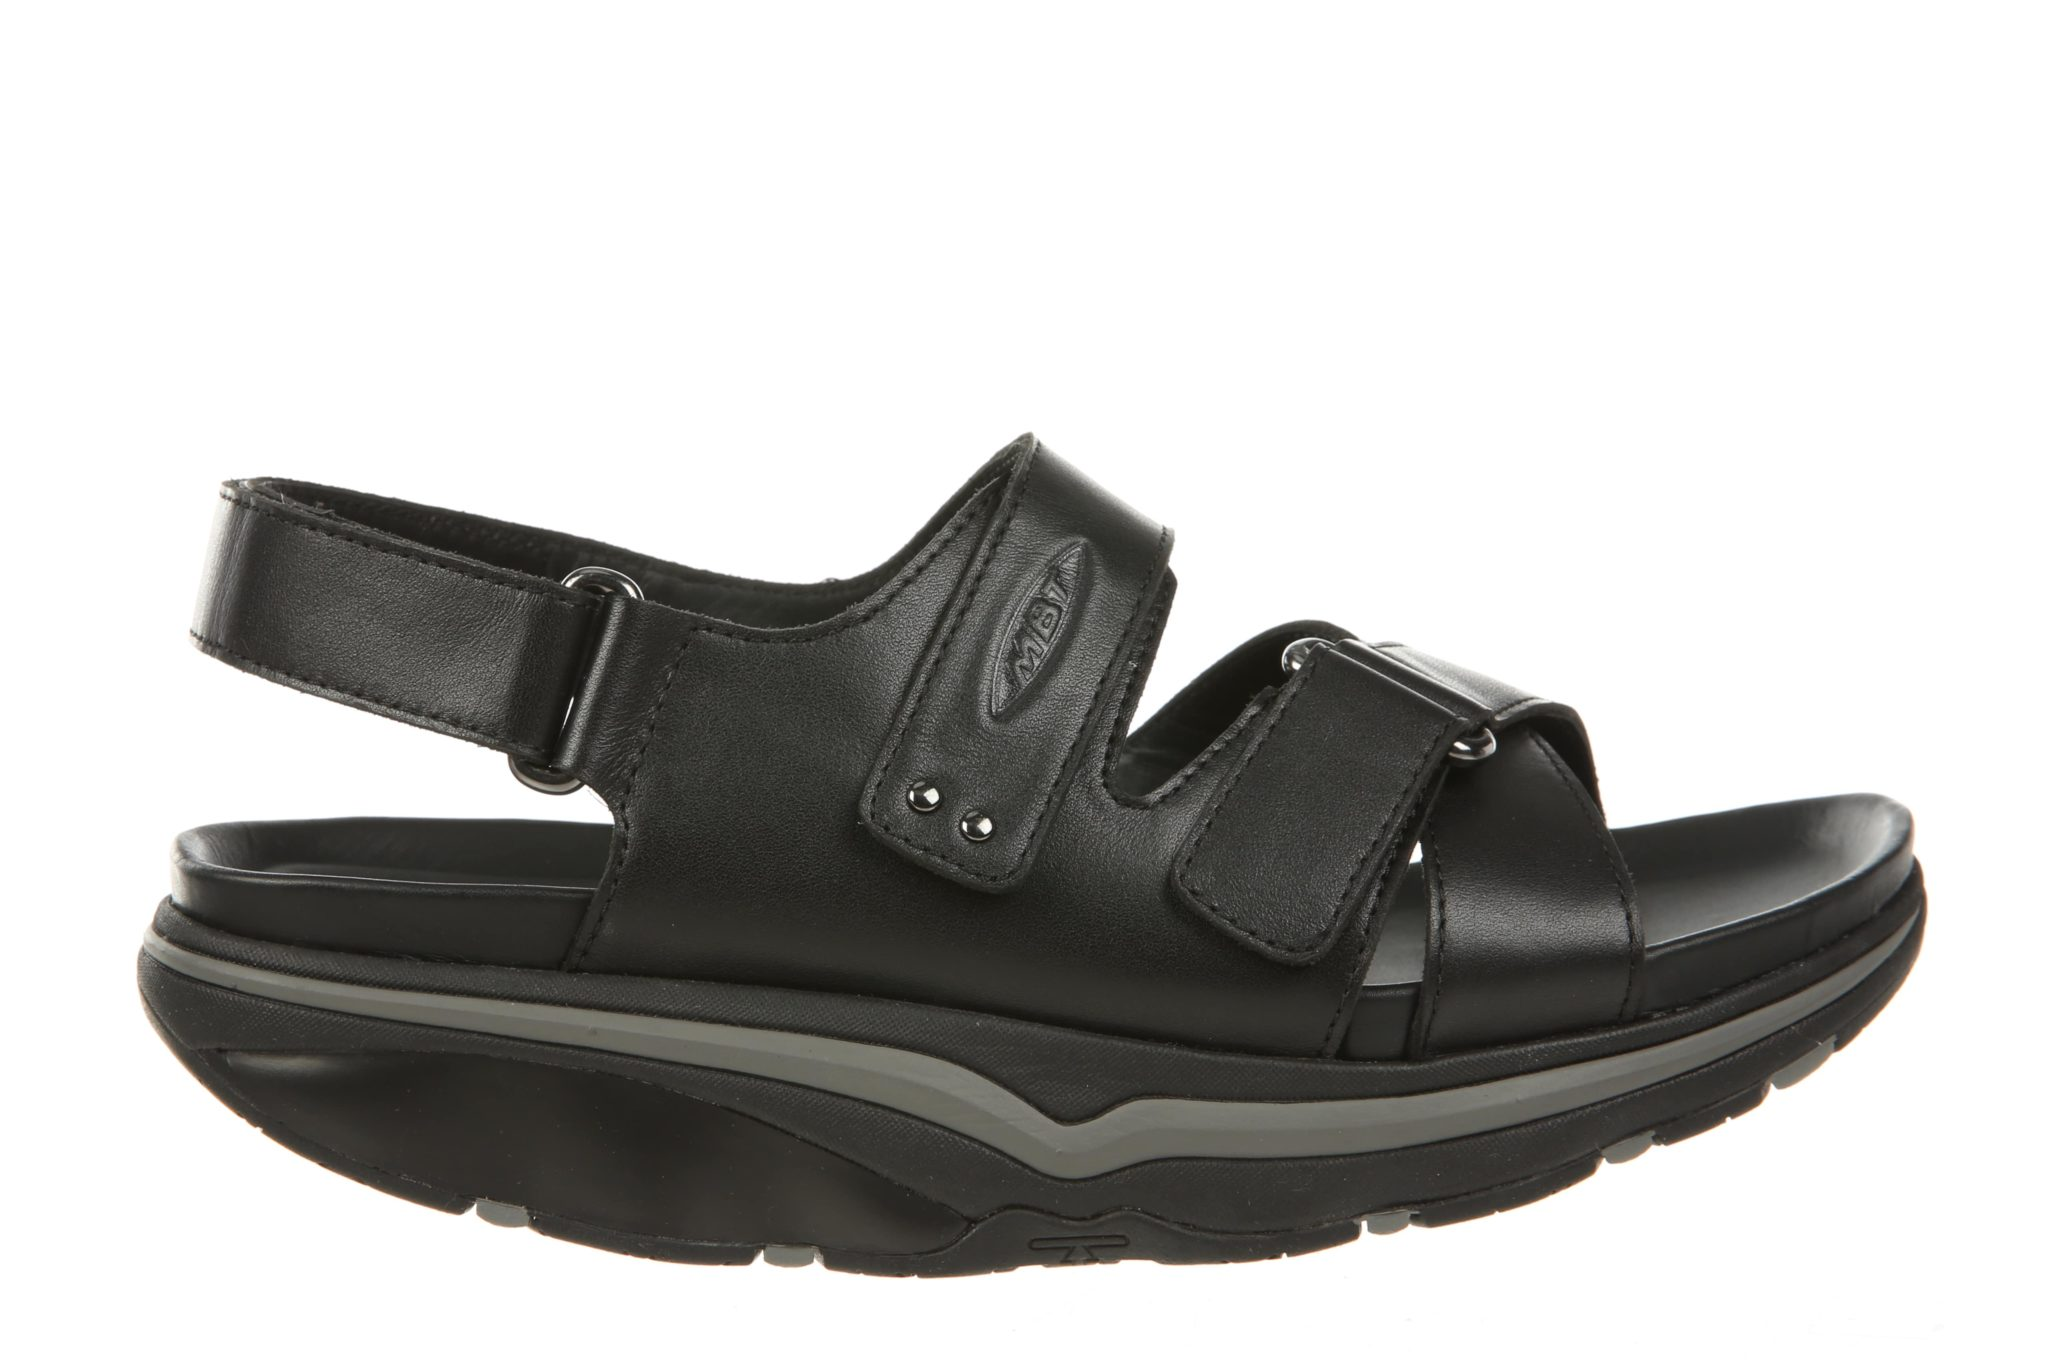 MBT UOMO ROCCO M BLACK 700958 03N LATERAL min